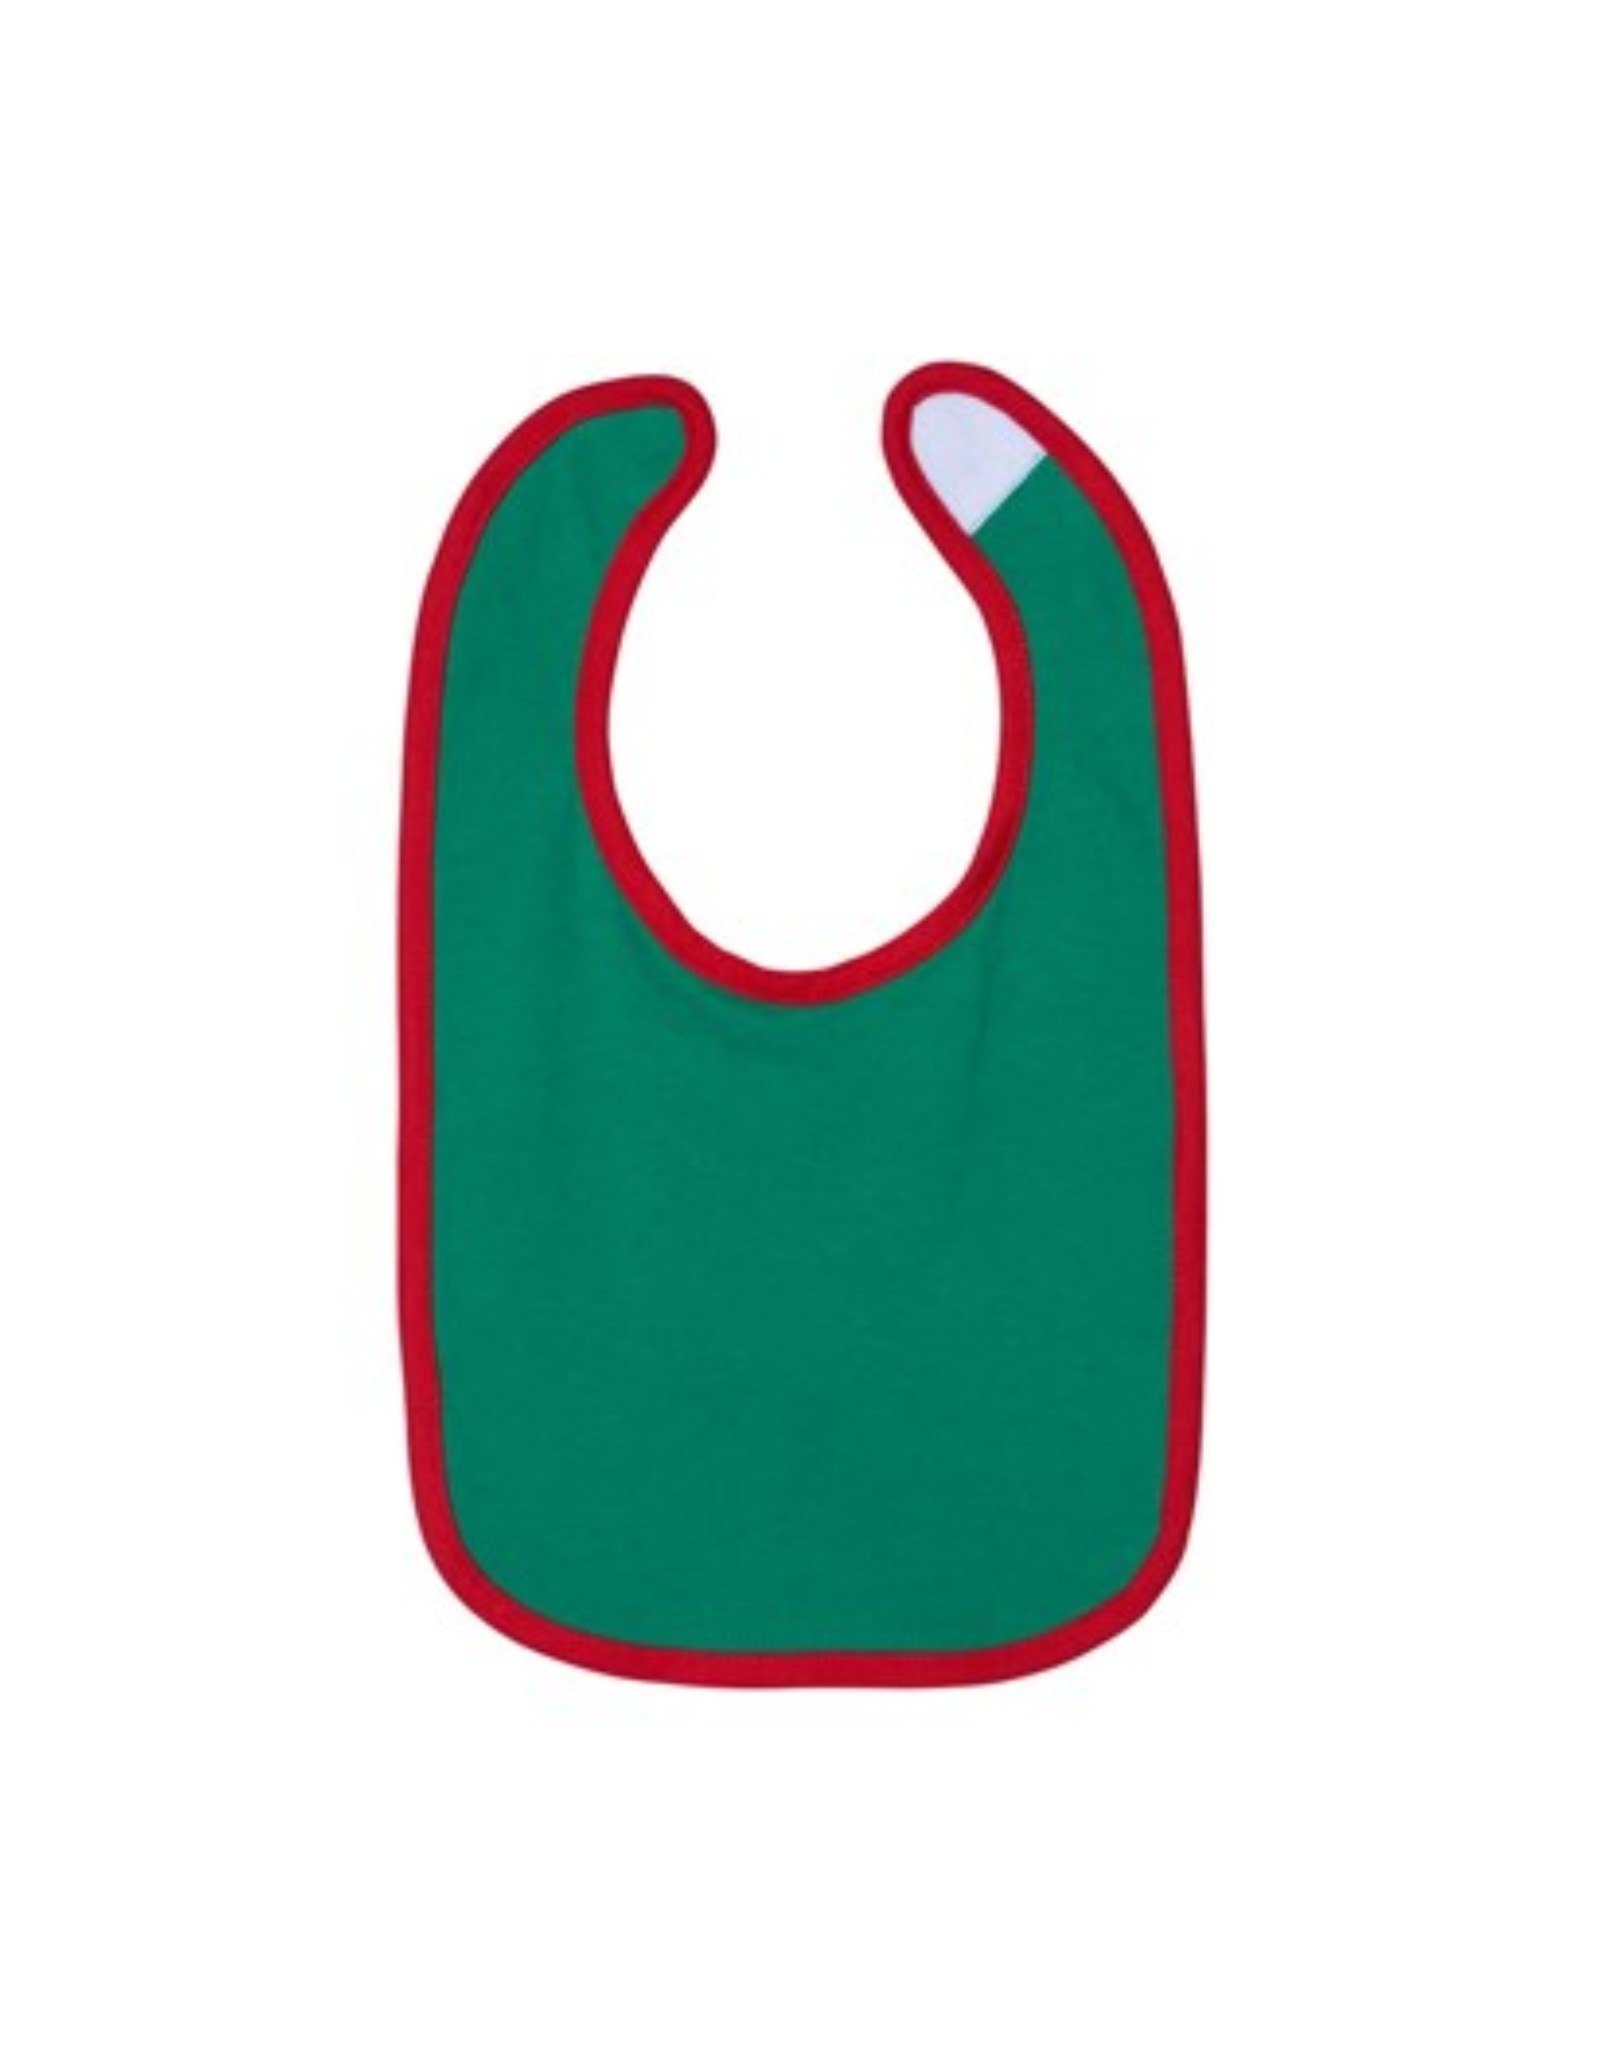 Rabbit Skins Red/Green Bib